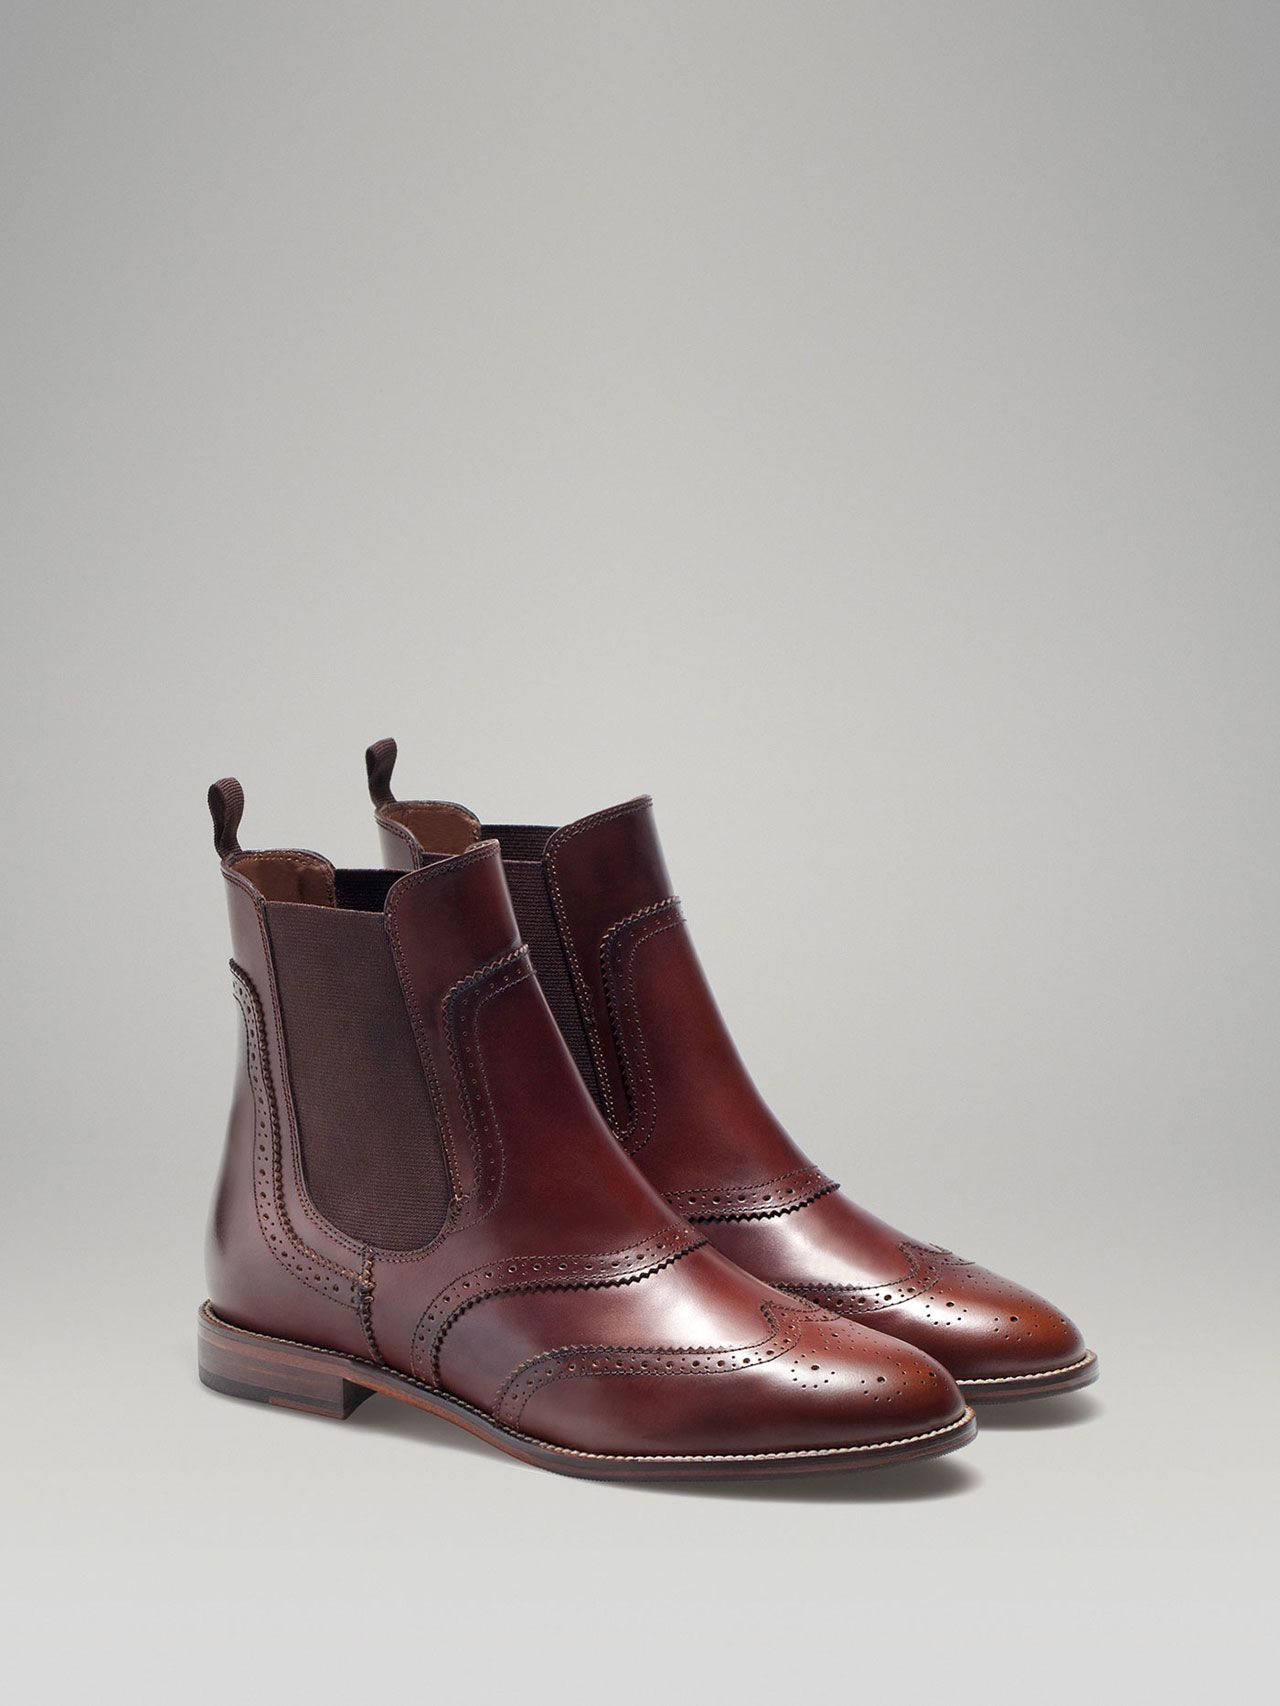 BROWN STRETCH ANKLE BOOT by Massimo Dutti || Natural antik leather ankle  boot with brogue